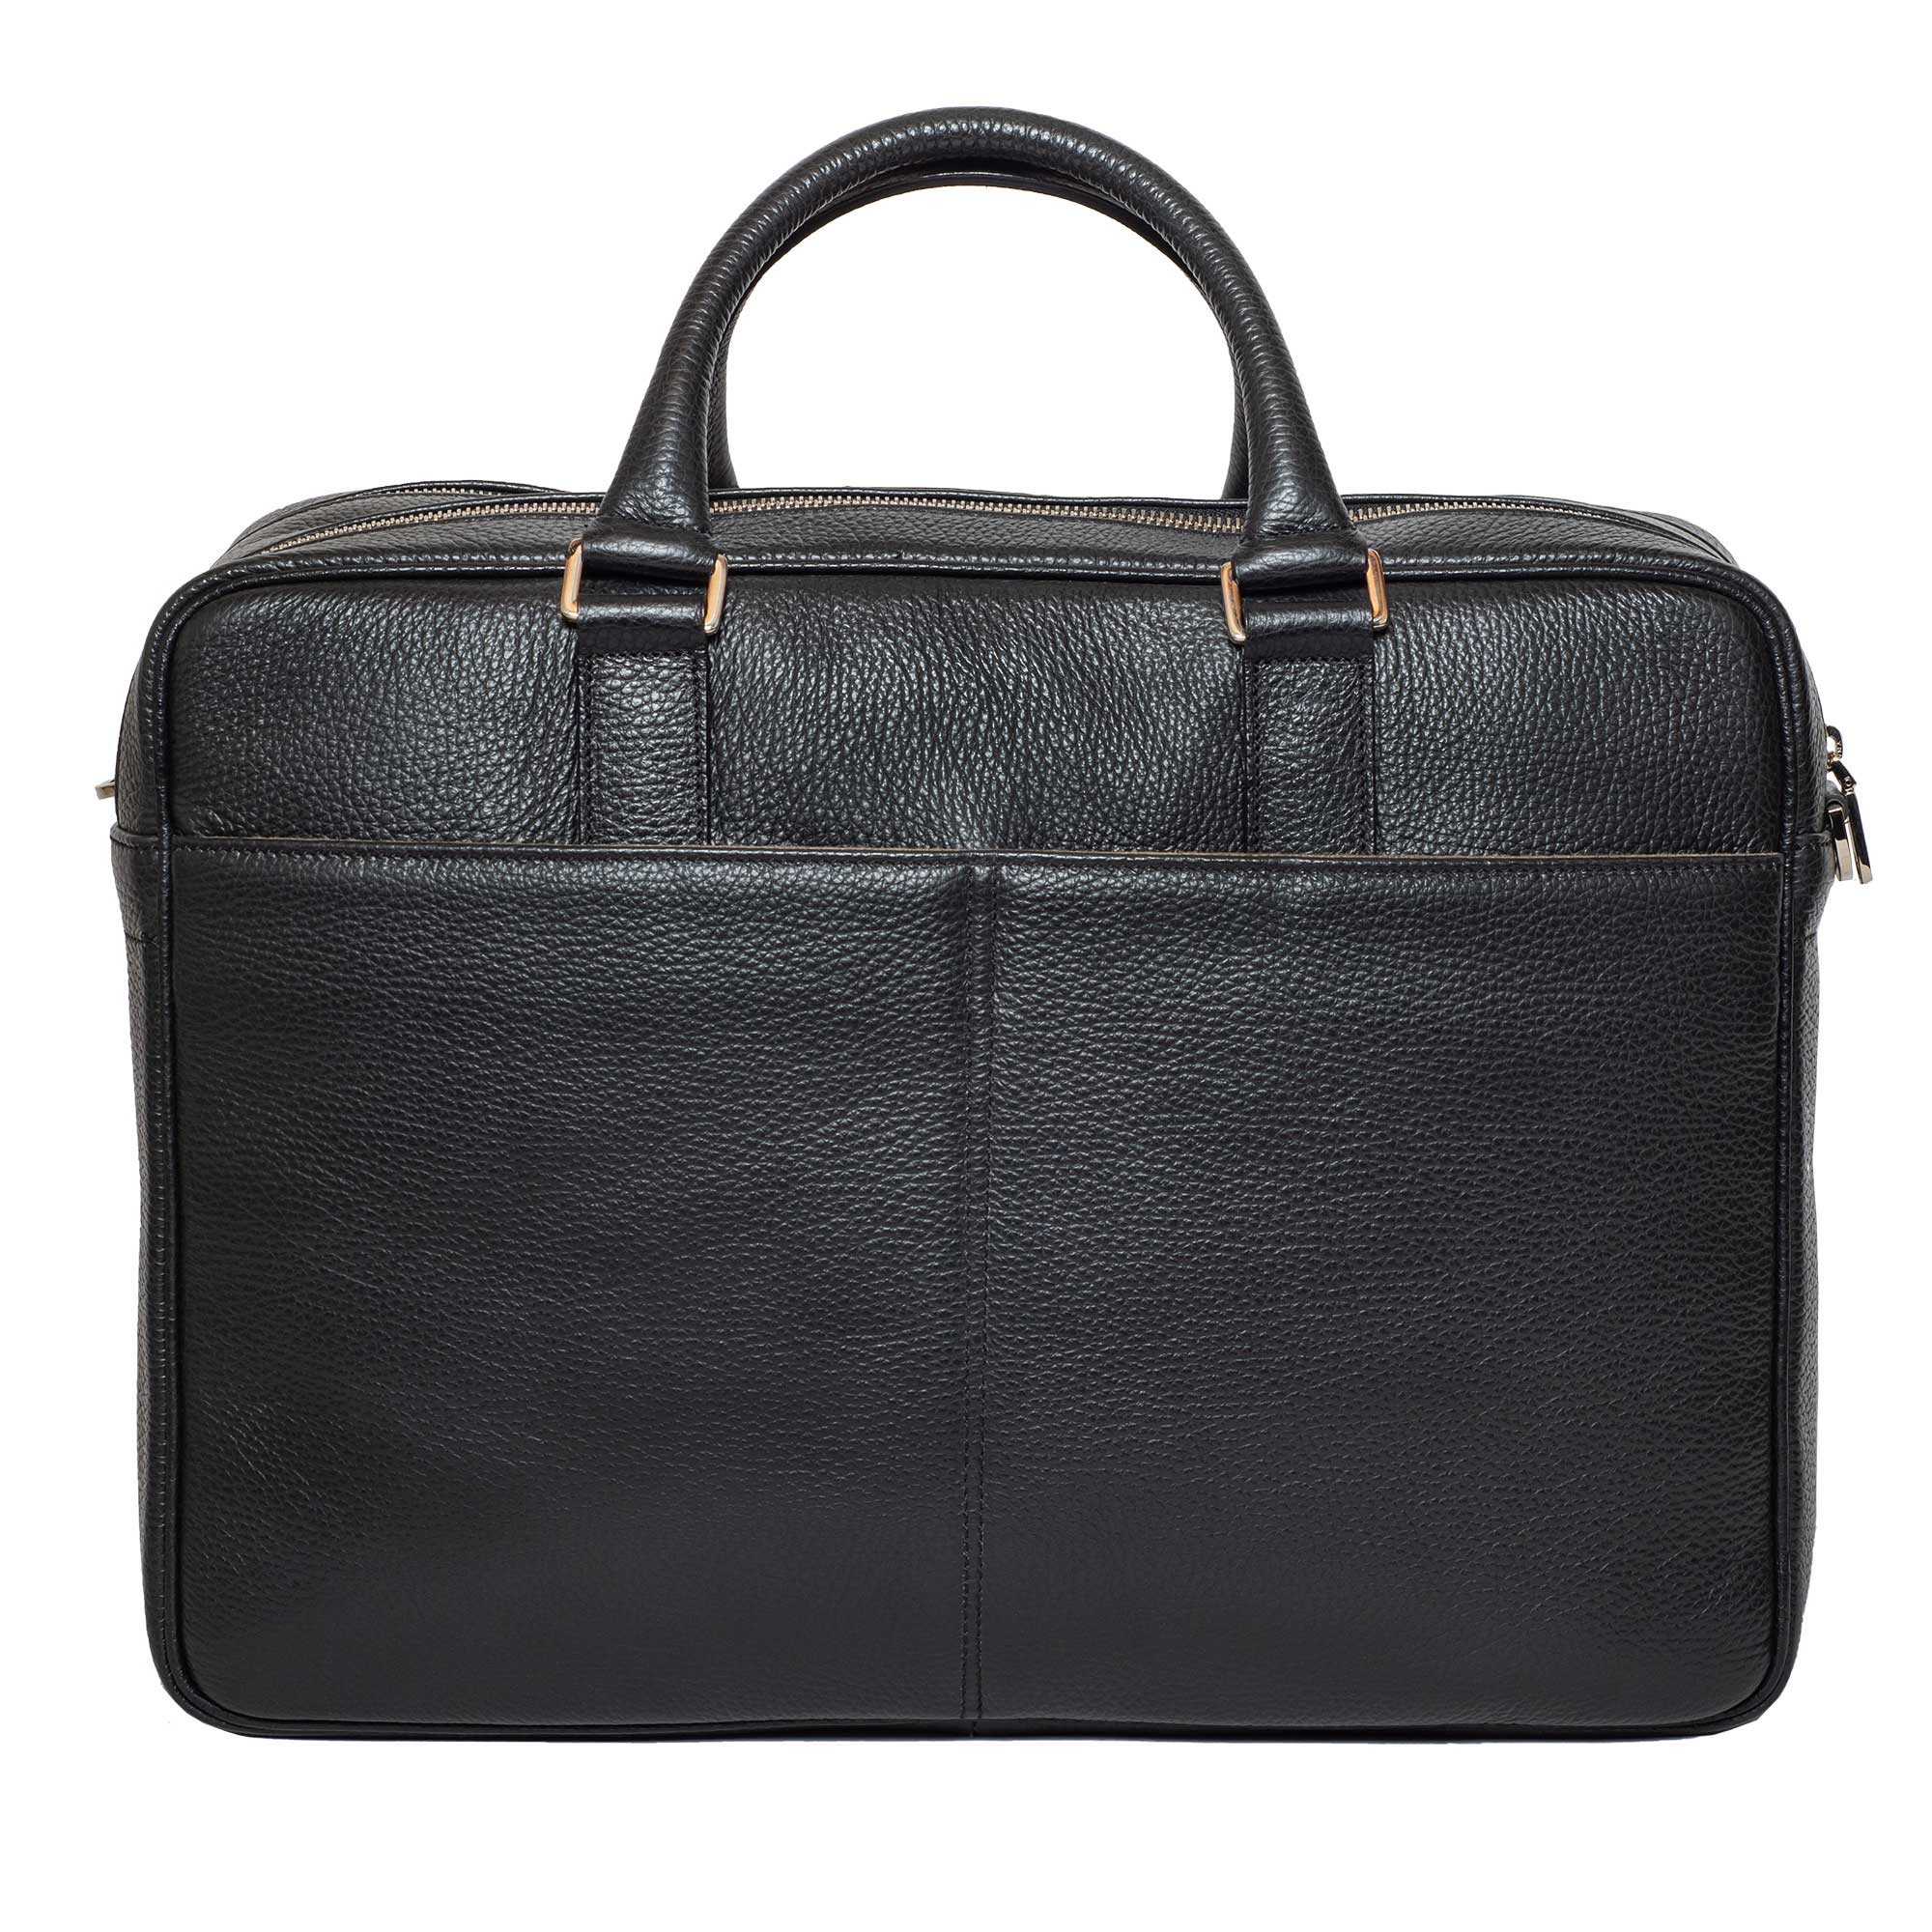 DiLoro Italian Leather Briefcases for Men | Made in Italy - Back view with two outside pockets